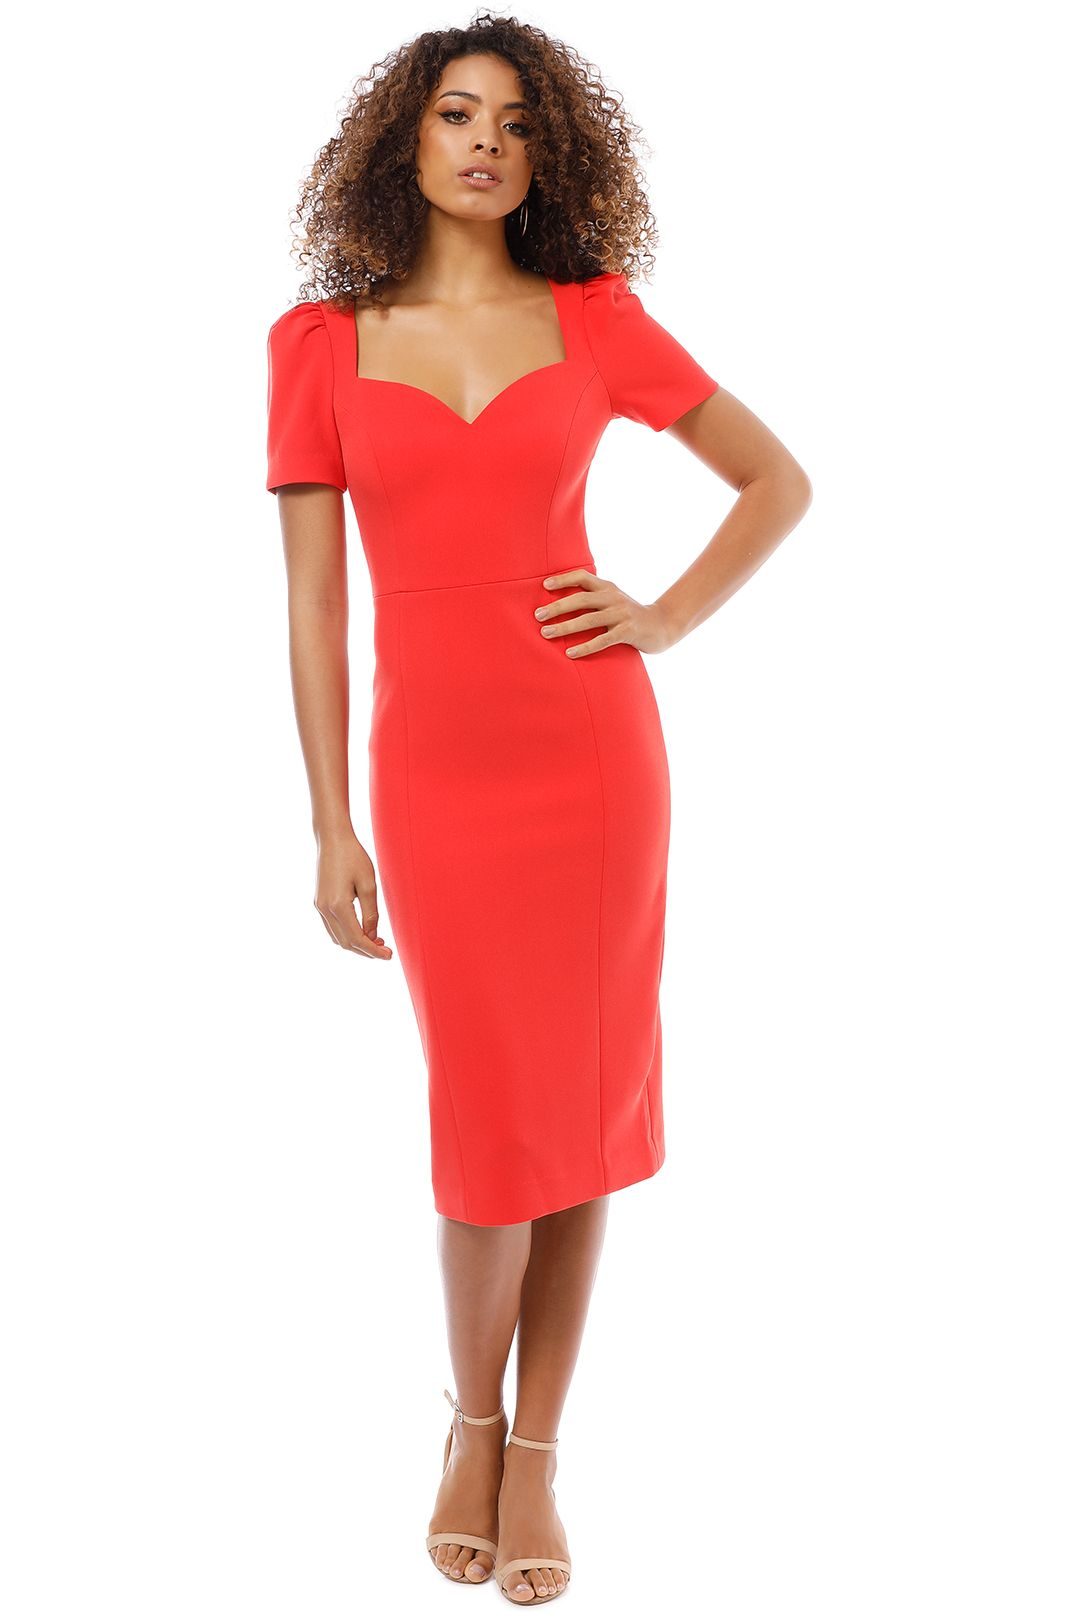 Rebecca Vallance - L'amour Dress - Red - Front